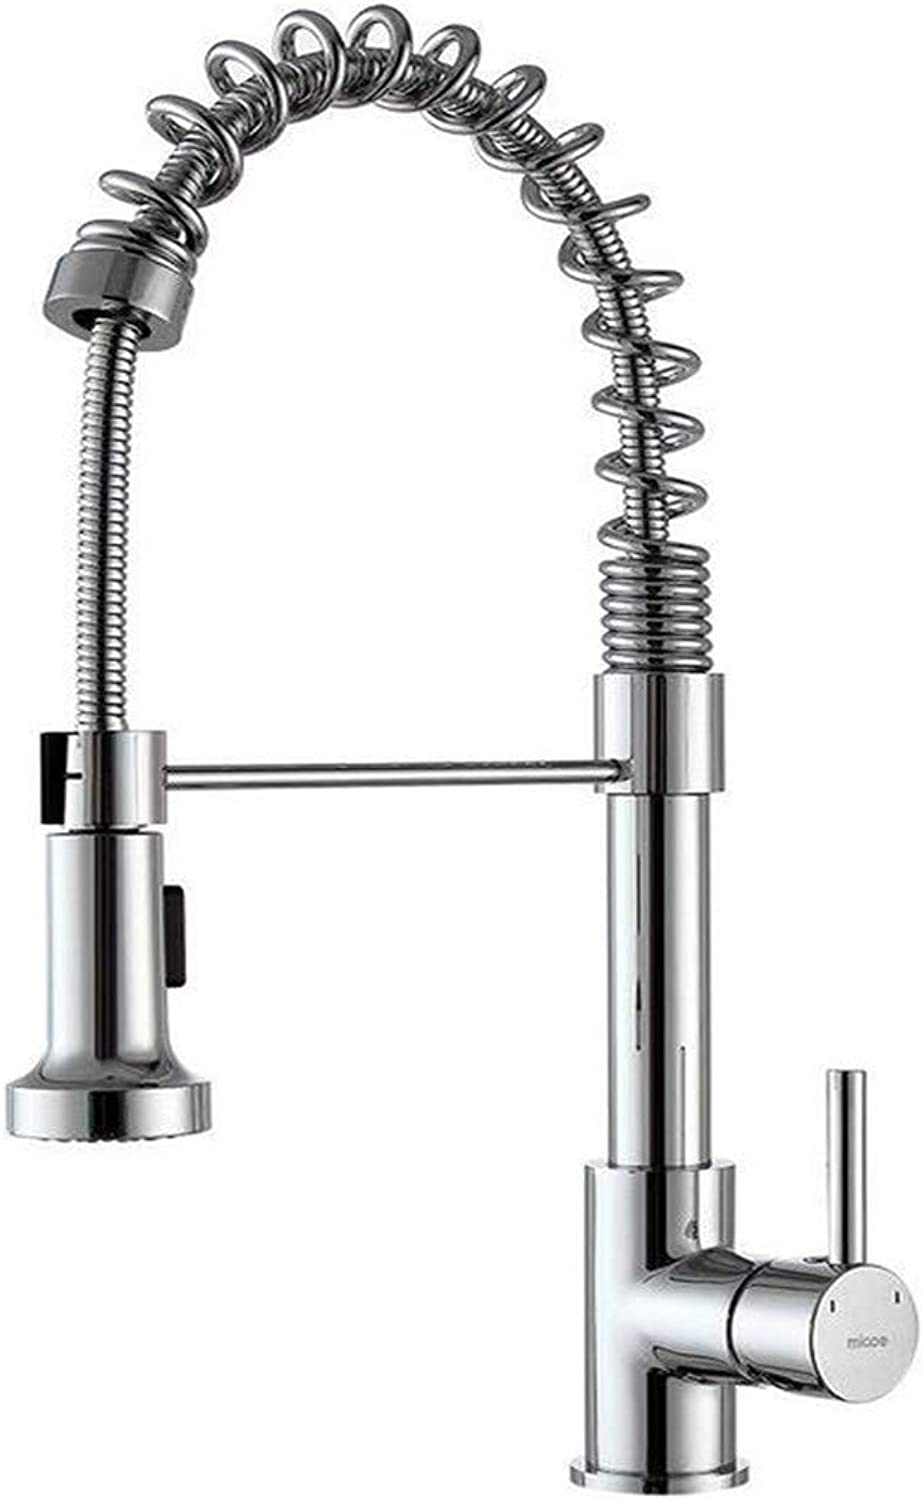 Retro Kitchen Hot and Cold Water 360 Degree redation Mixer Kitchen Tap Single Lever Swivel Spout Faucet Black and Chrome